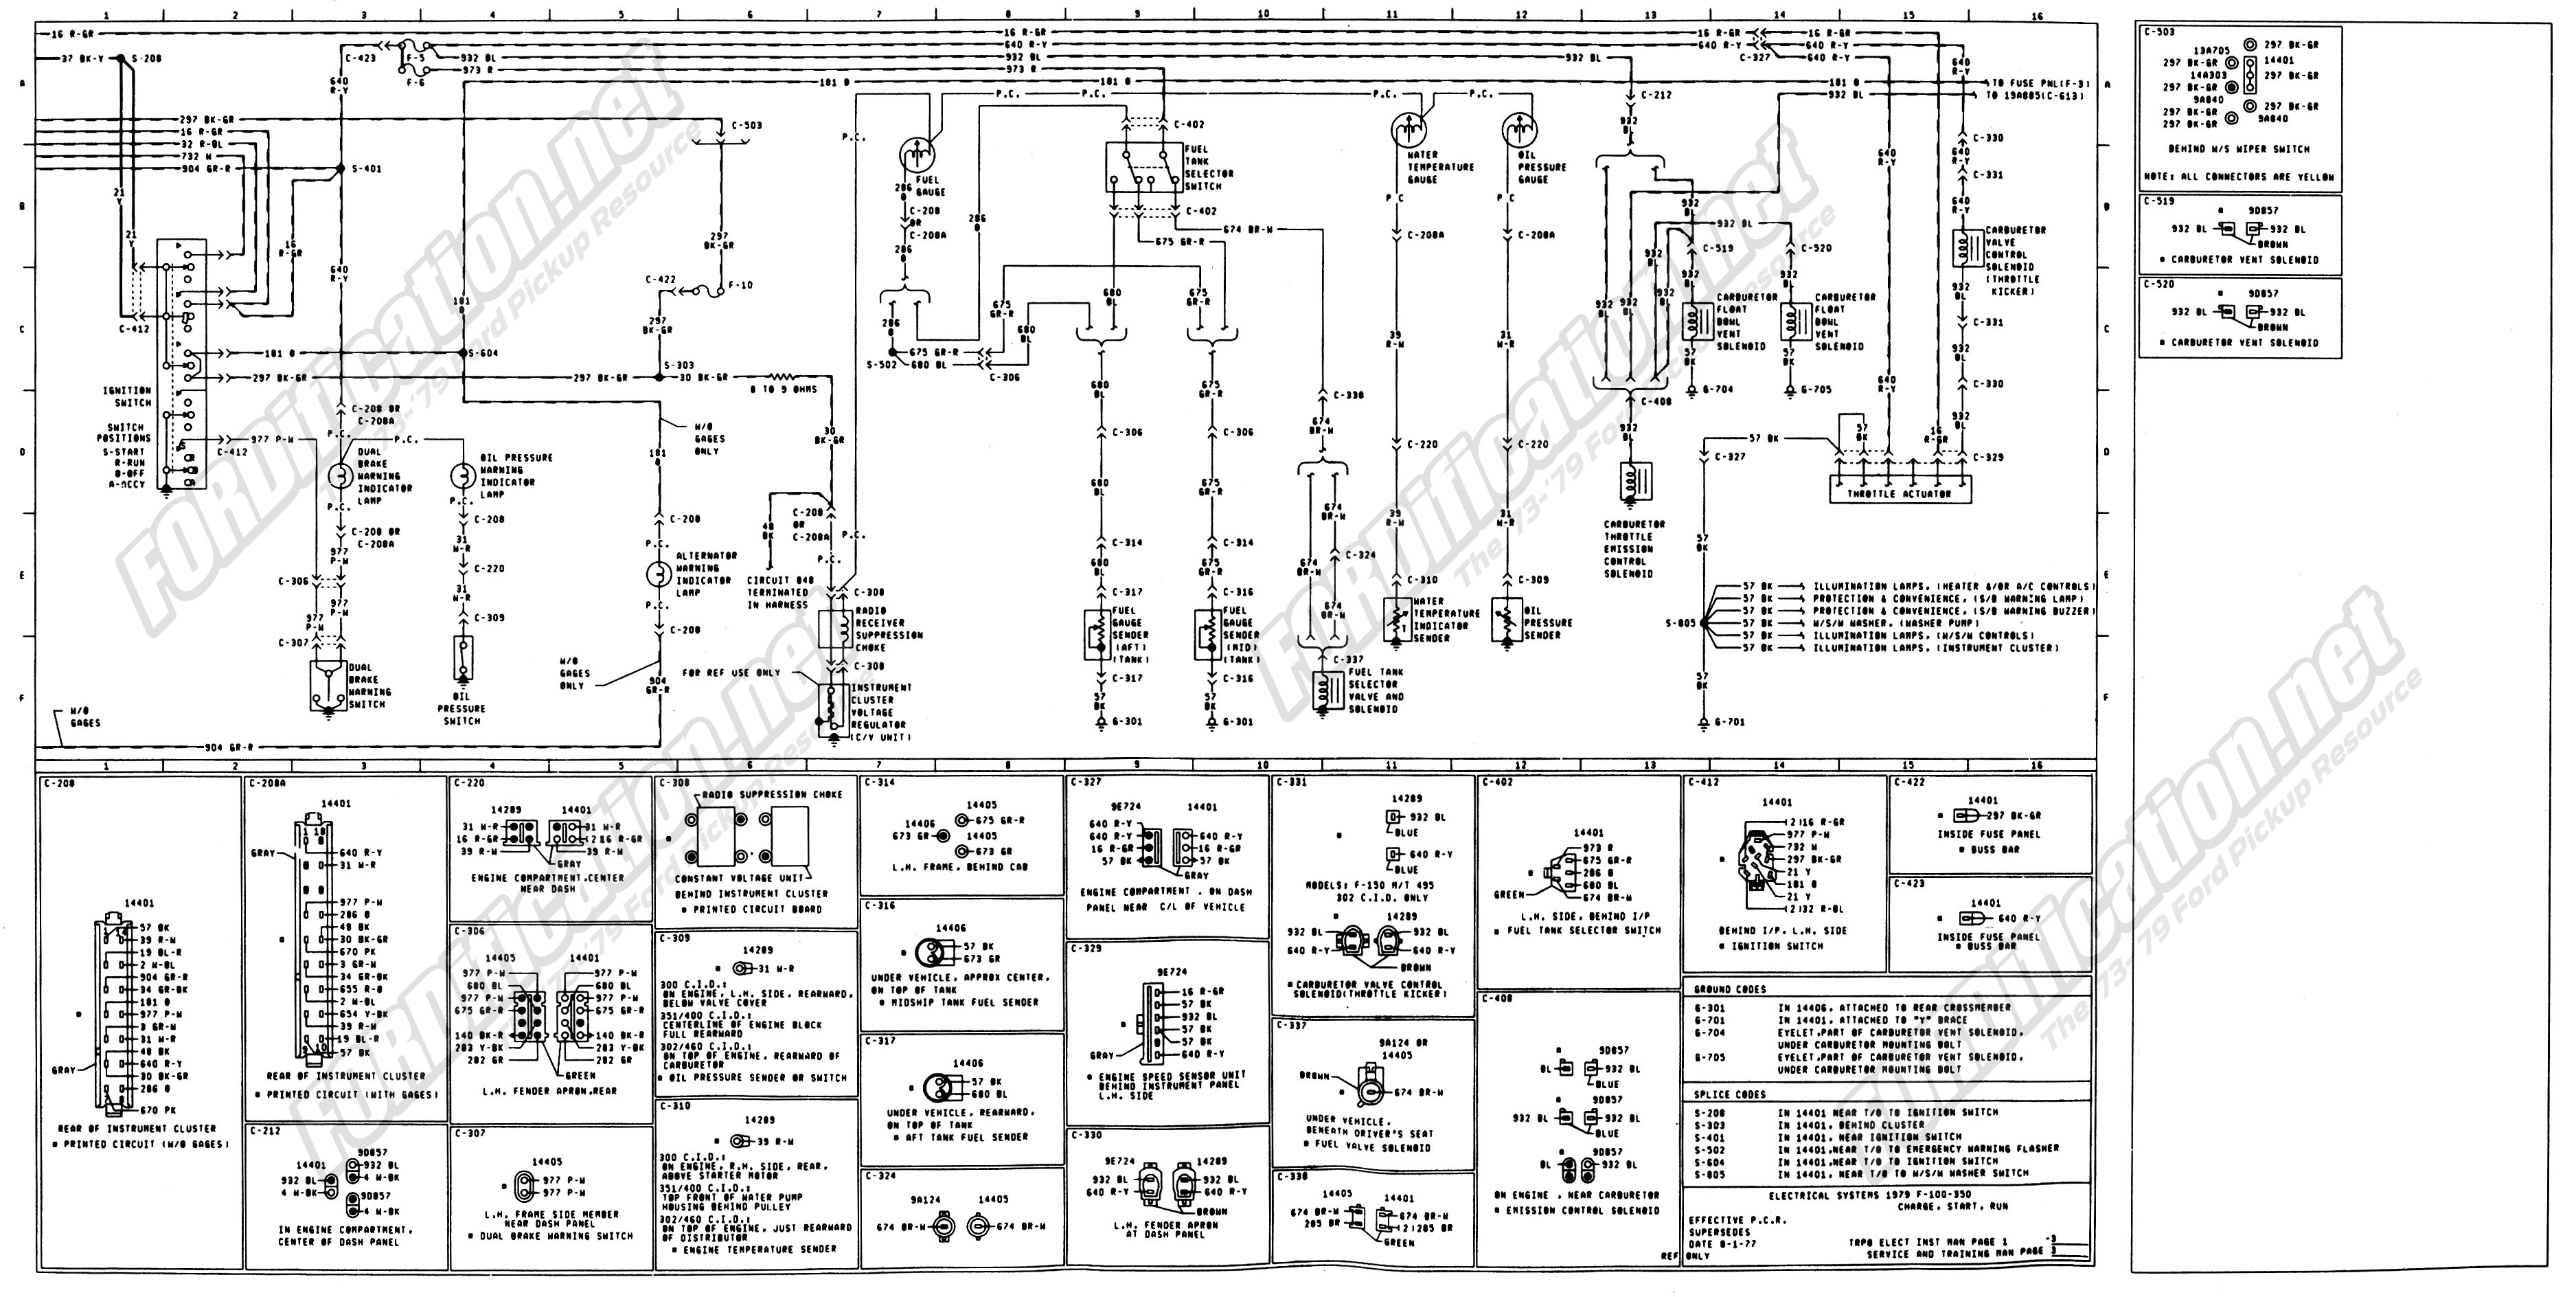 06 Ford F250 Wiring Diagram Schematics 2011 Mini Cooper Clubman 1973 1979 Truck Diagrams Fordification Net Wiper Switch